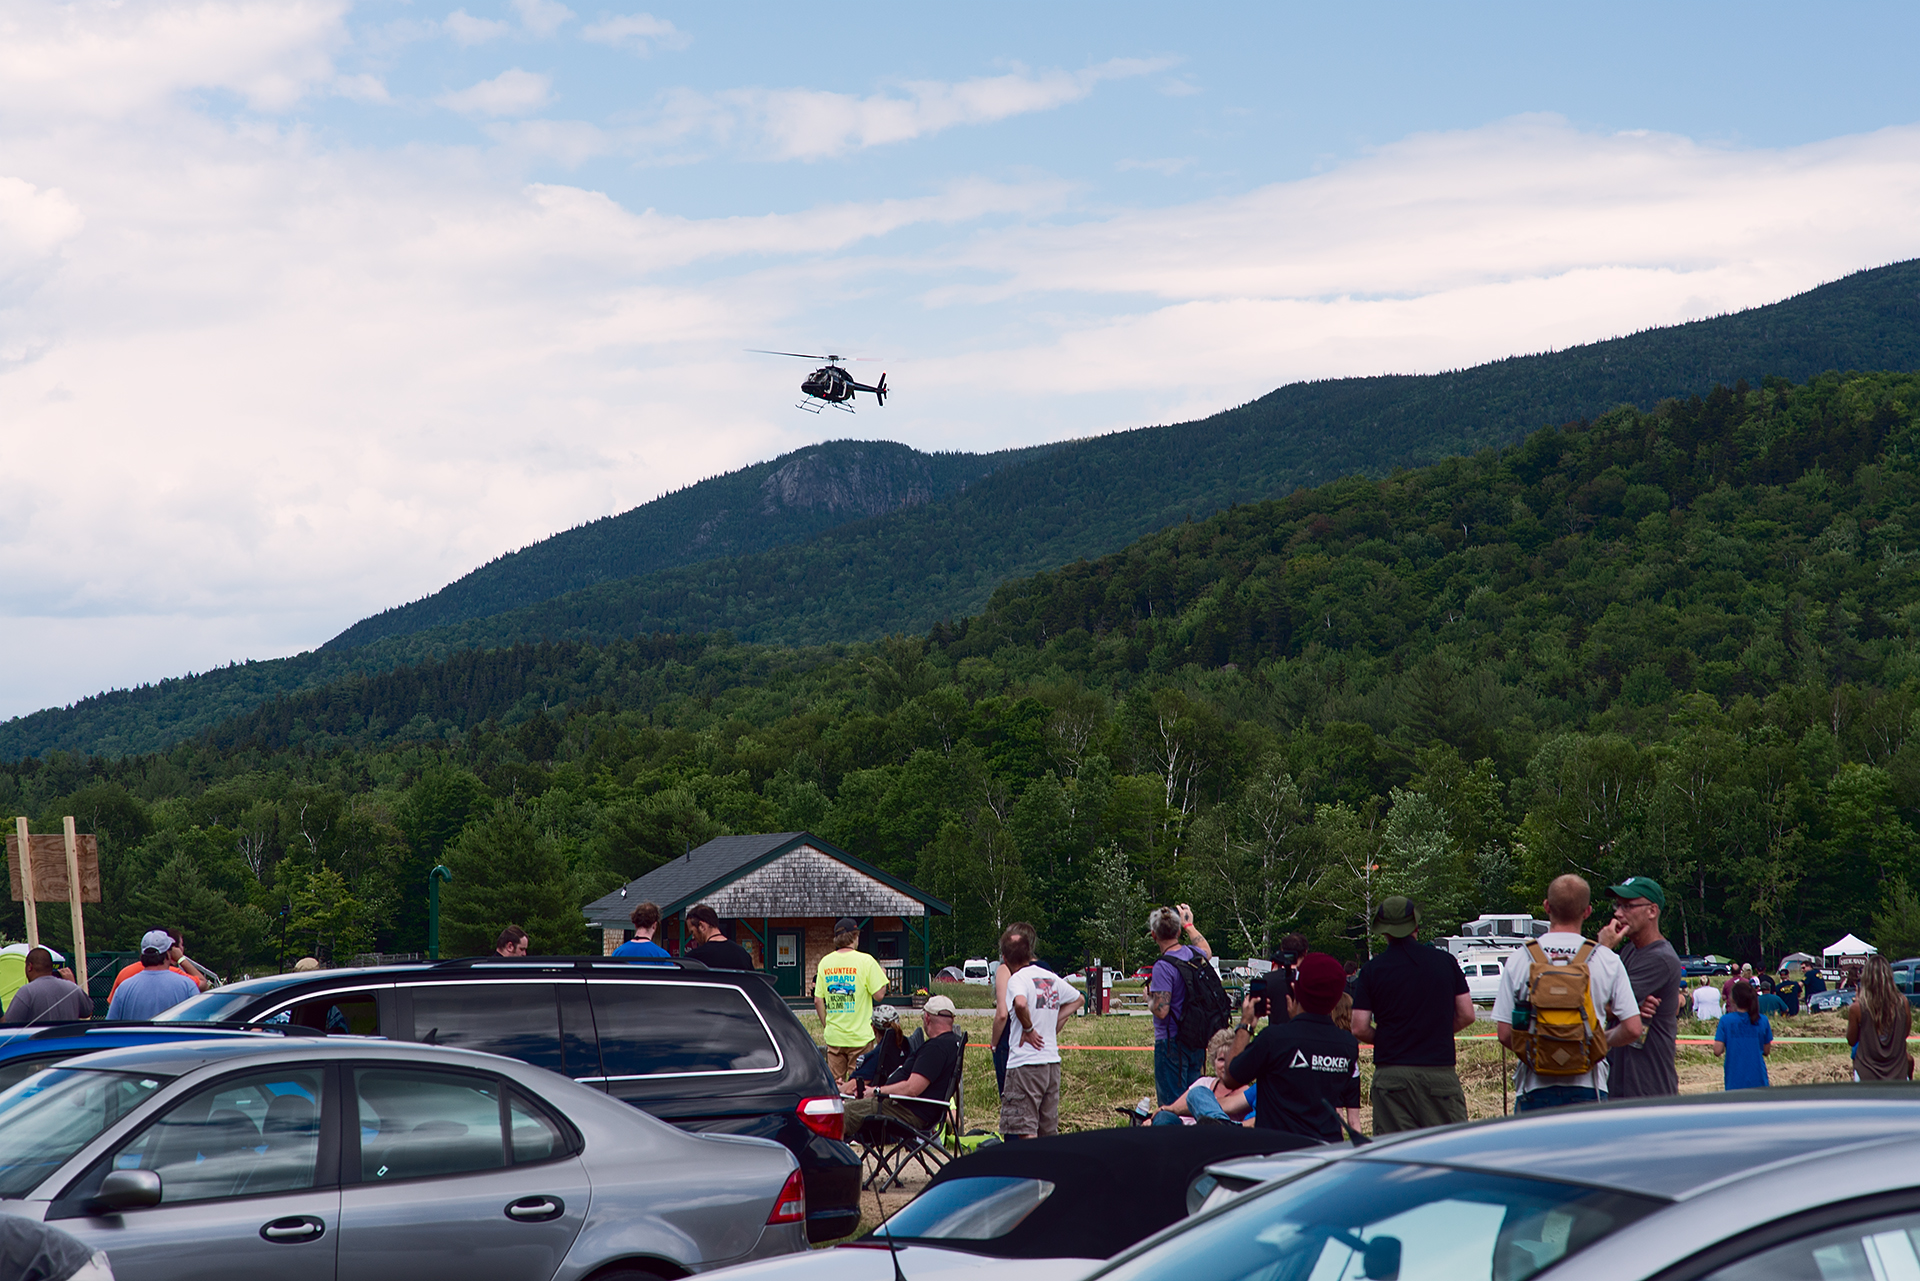 Helicopter taking off to follow Car 199 at Climb to the Clouds 2017